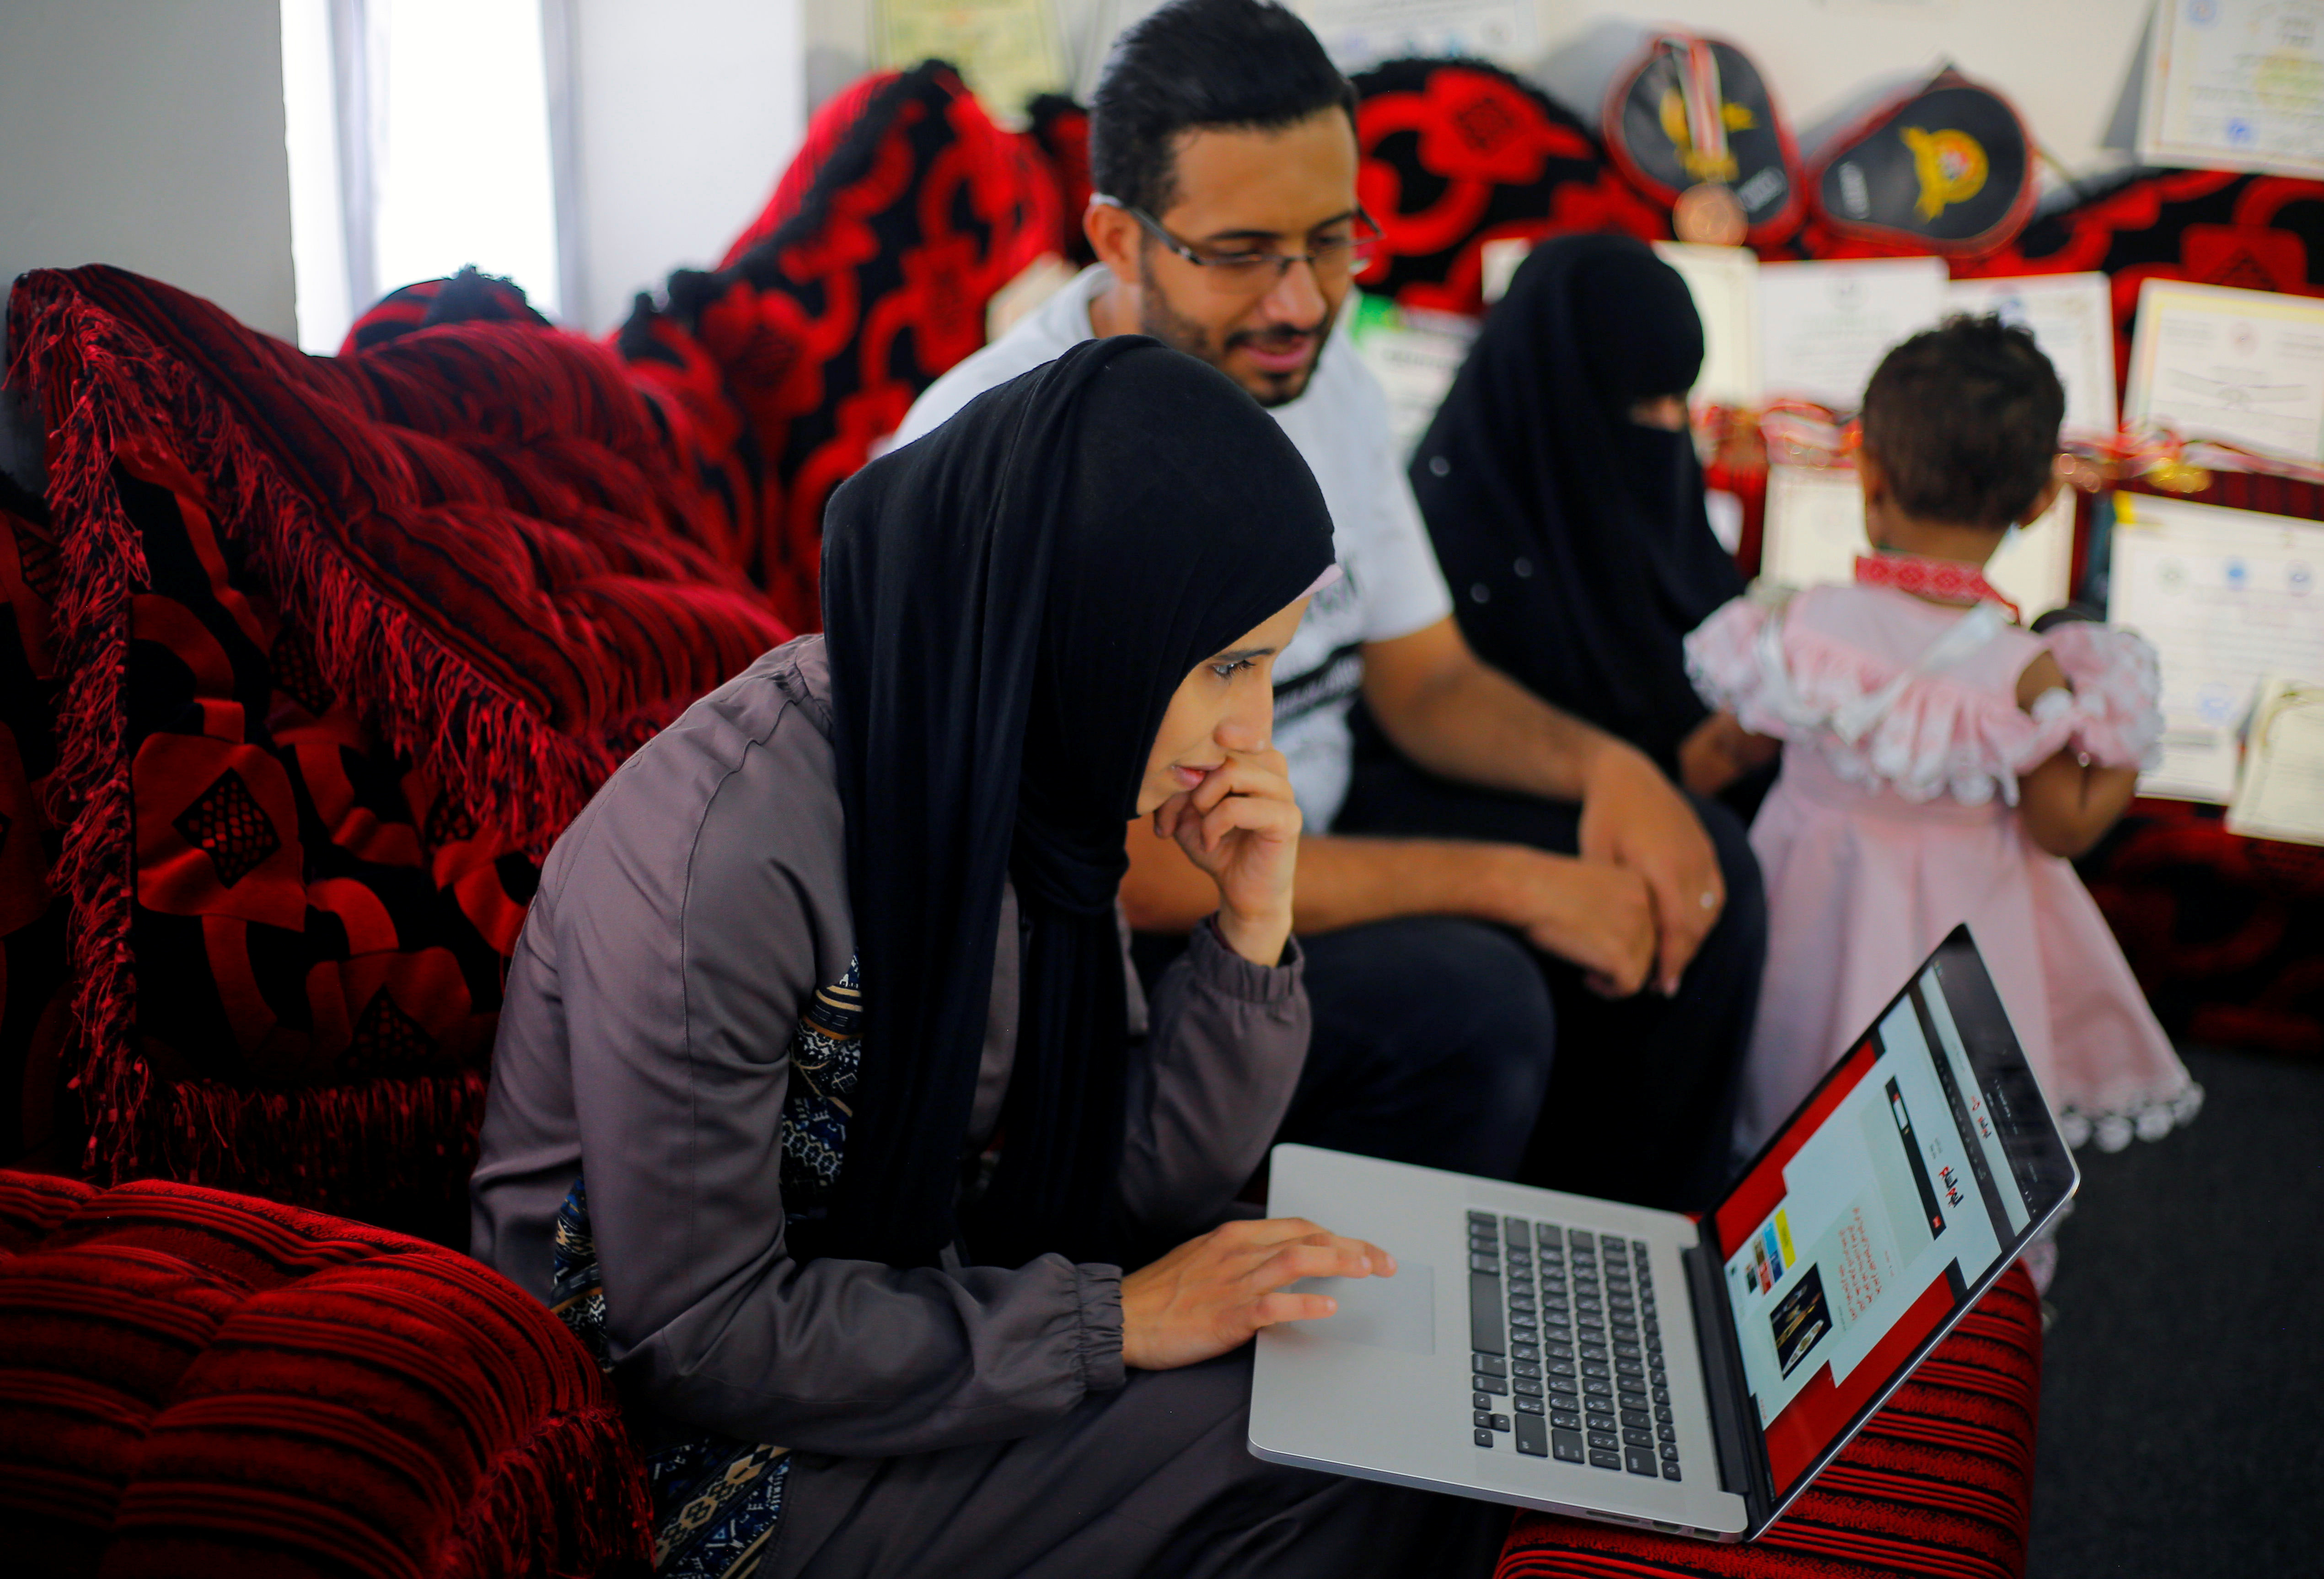 Martial arts trainer Seham Amer checks work on the computer as she sits with relatives at her home in Sanaa, Yemen September 3, 2020. Picture taken September 3, 2020. REUTERS/Nusaibah Almuaalemi - RC2OVI9VISNC